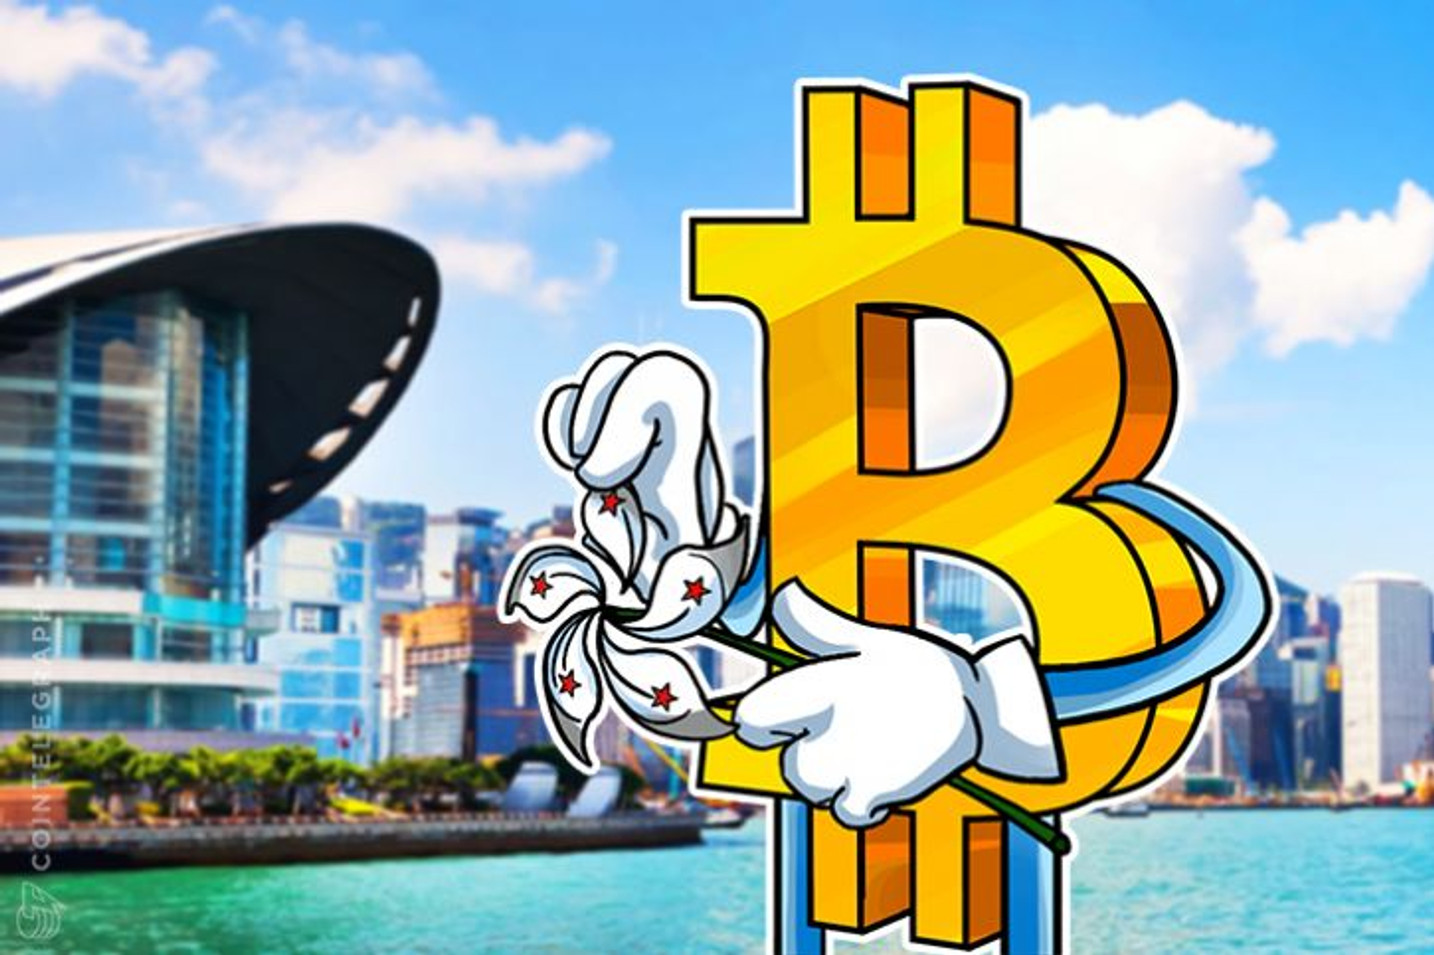 China Drama Causes Big Migration of Bitcoin Traders, Businesses